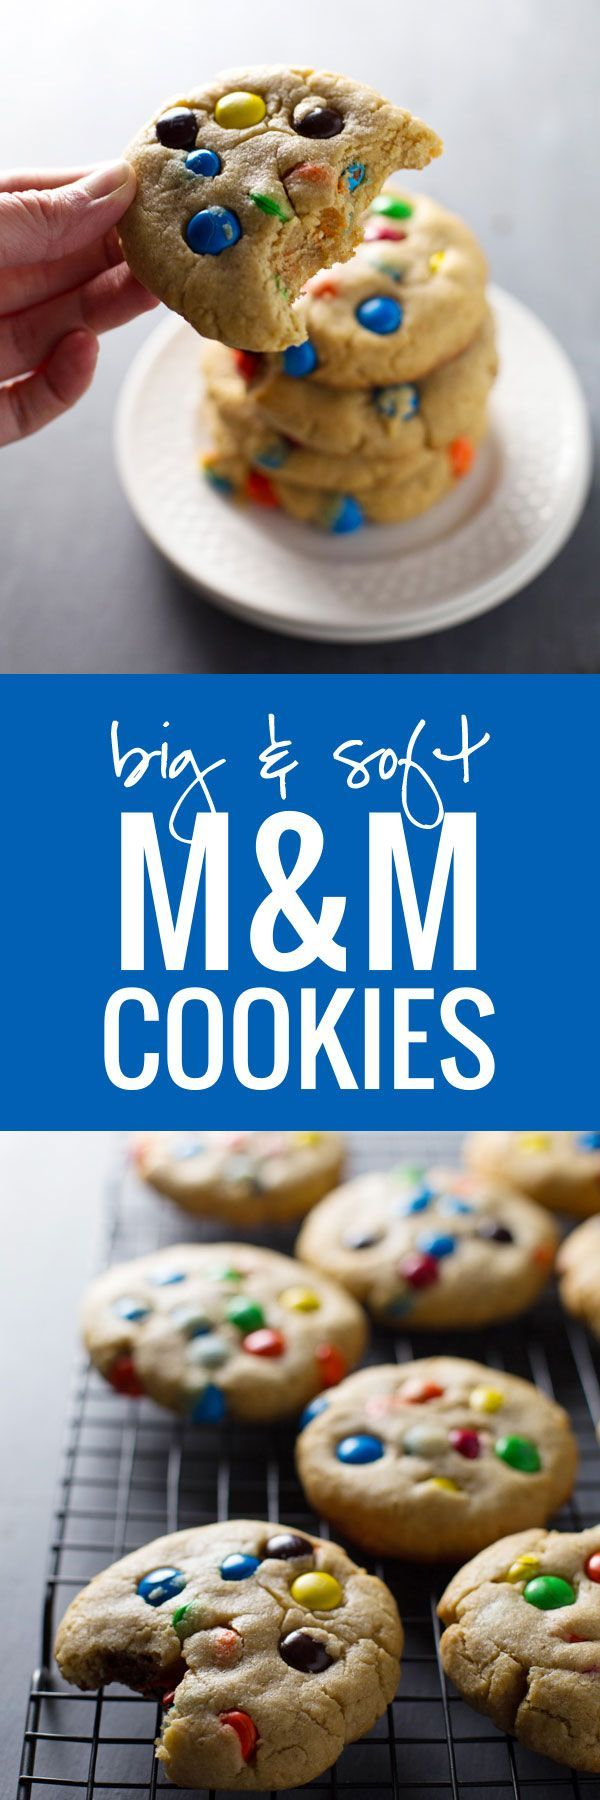 Big Soft M&M Cookies | YUM